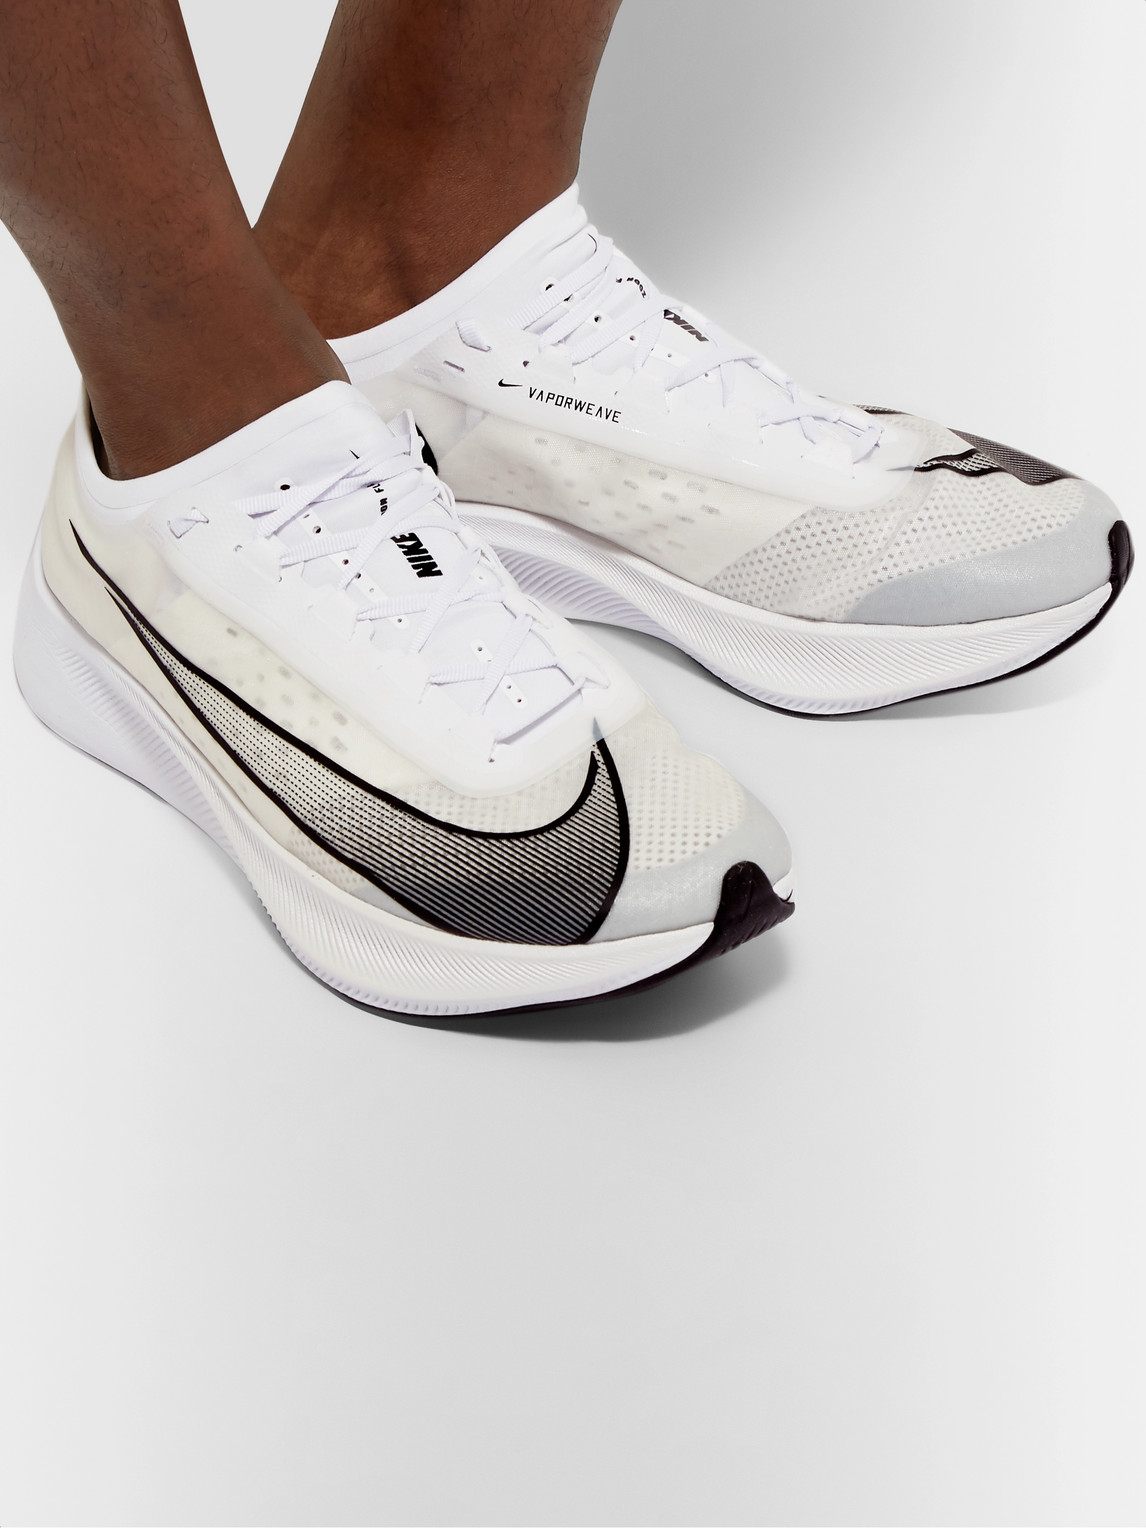 Nike Sneakers ZOOM FLY 3 VAPORWEAVE RUNNING SNEAKERS